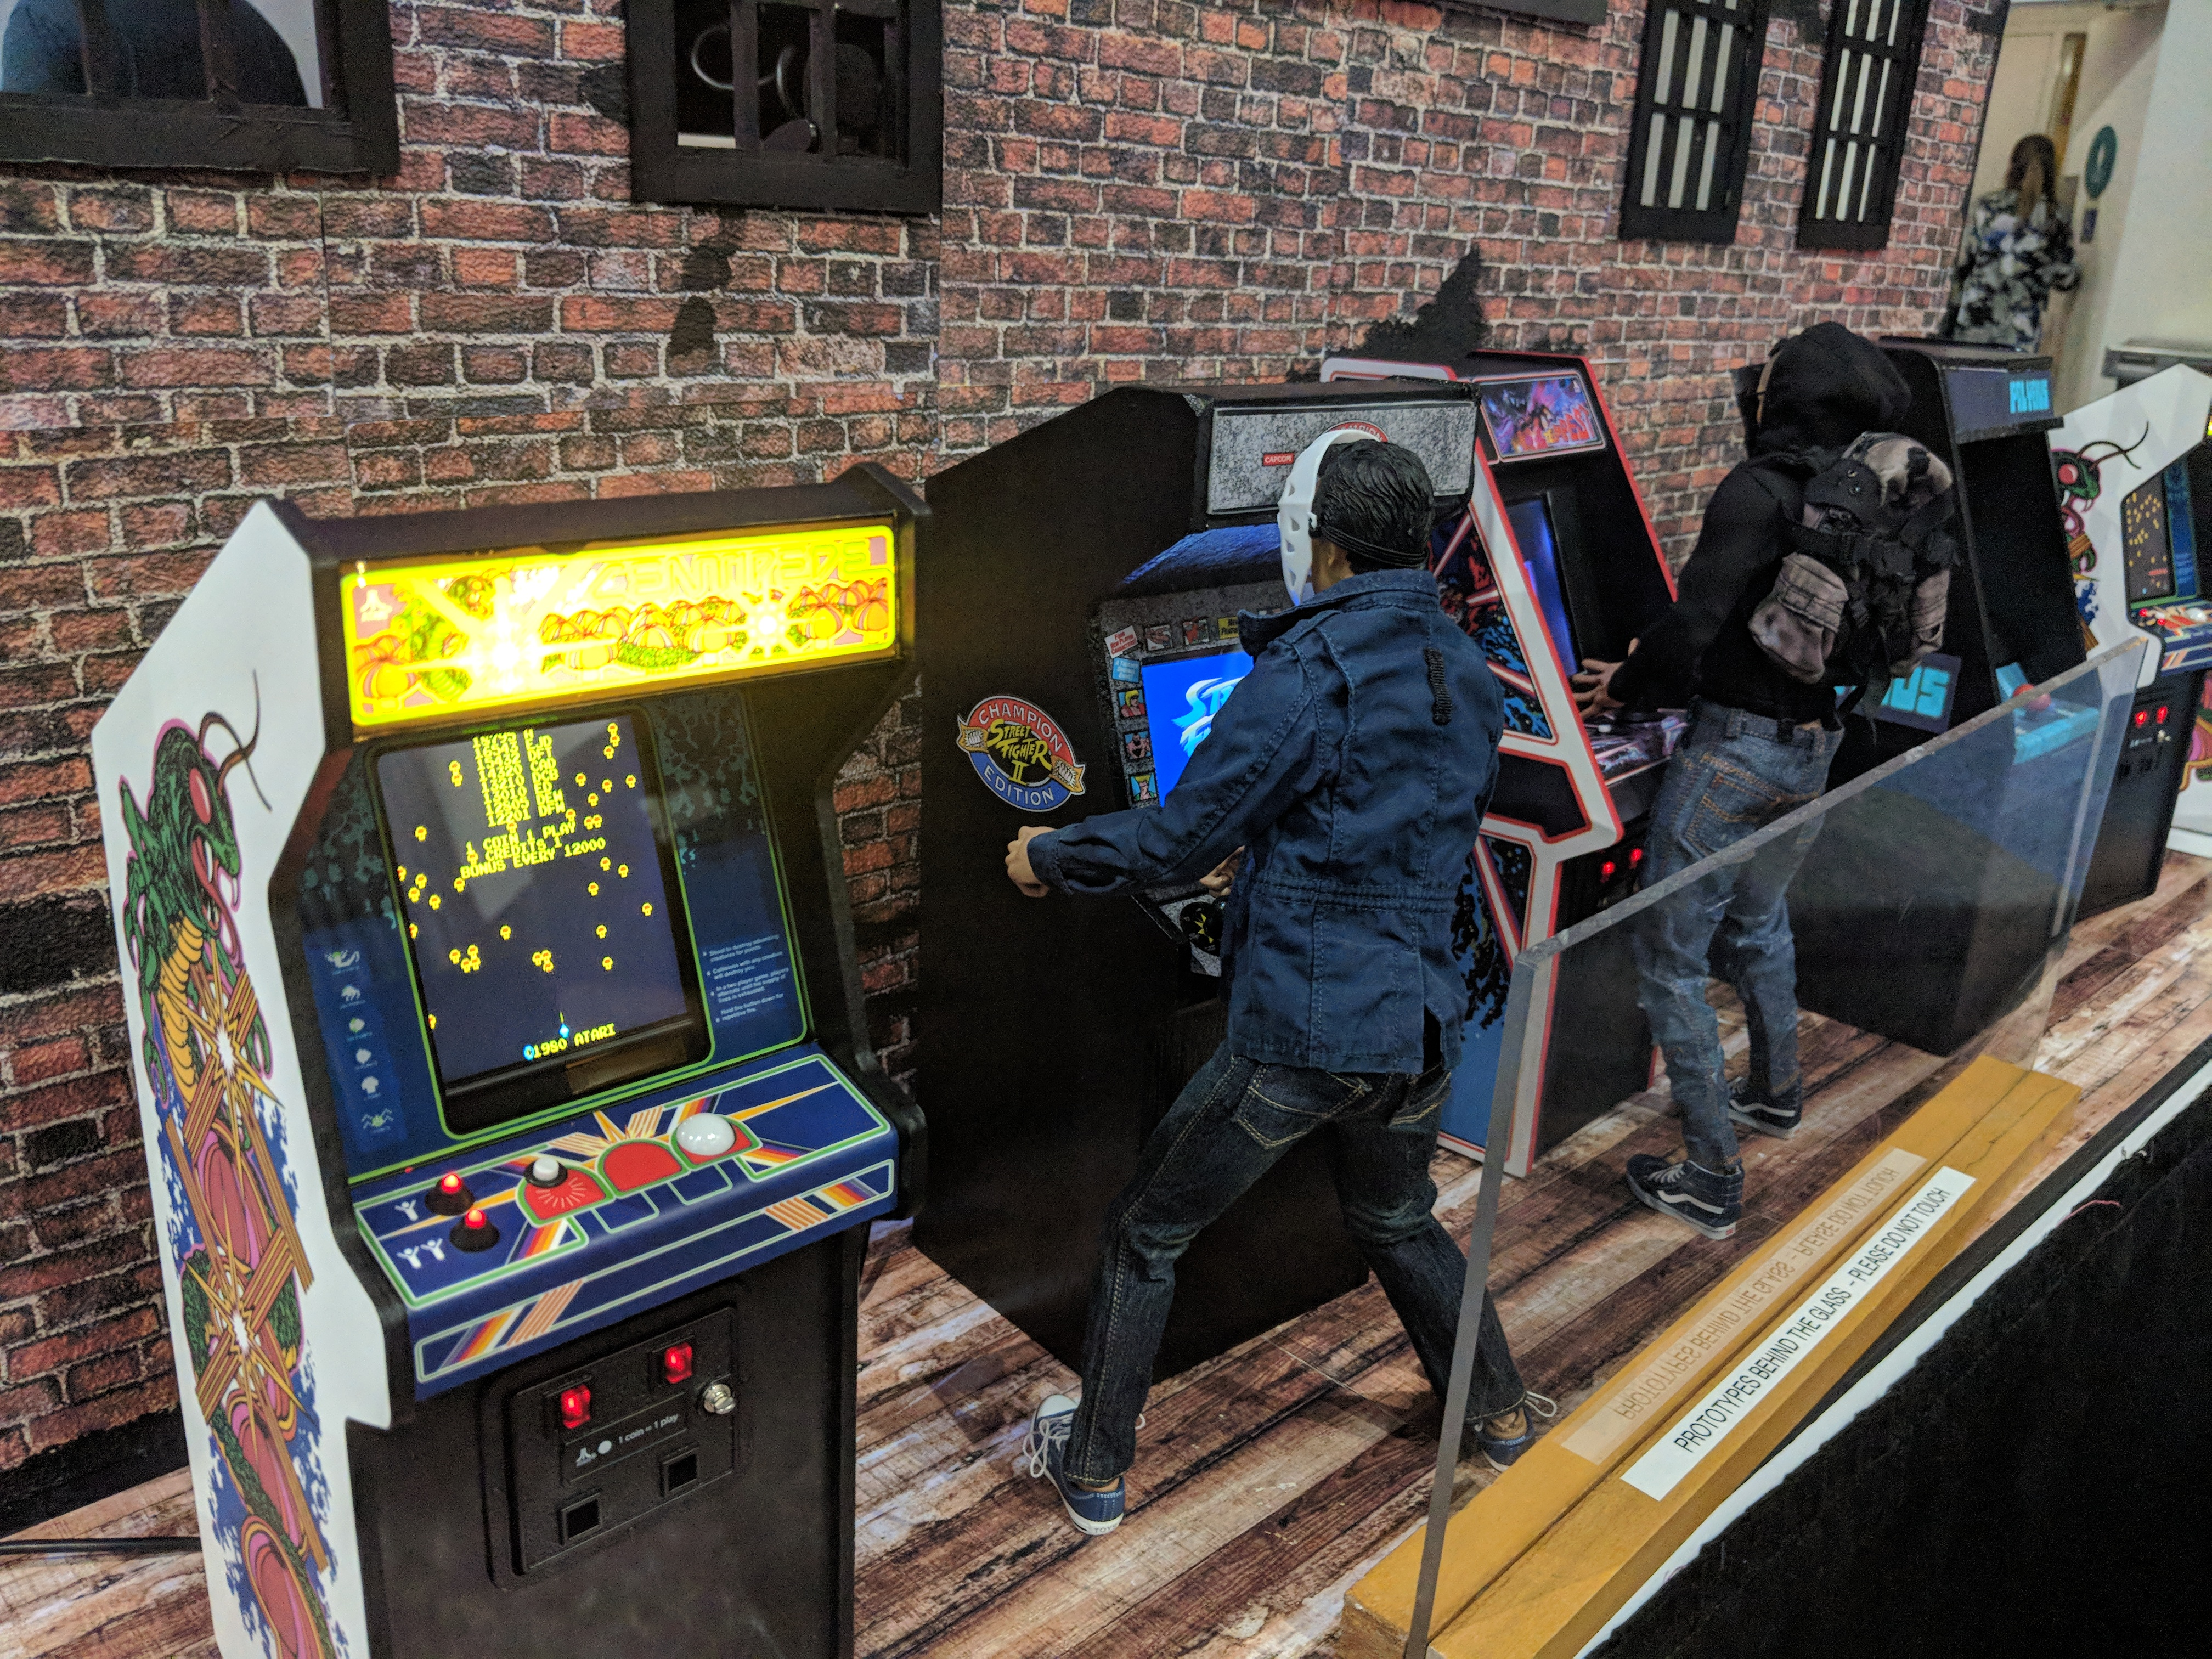 Attendees of E3 2018 play classic arcade machines.